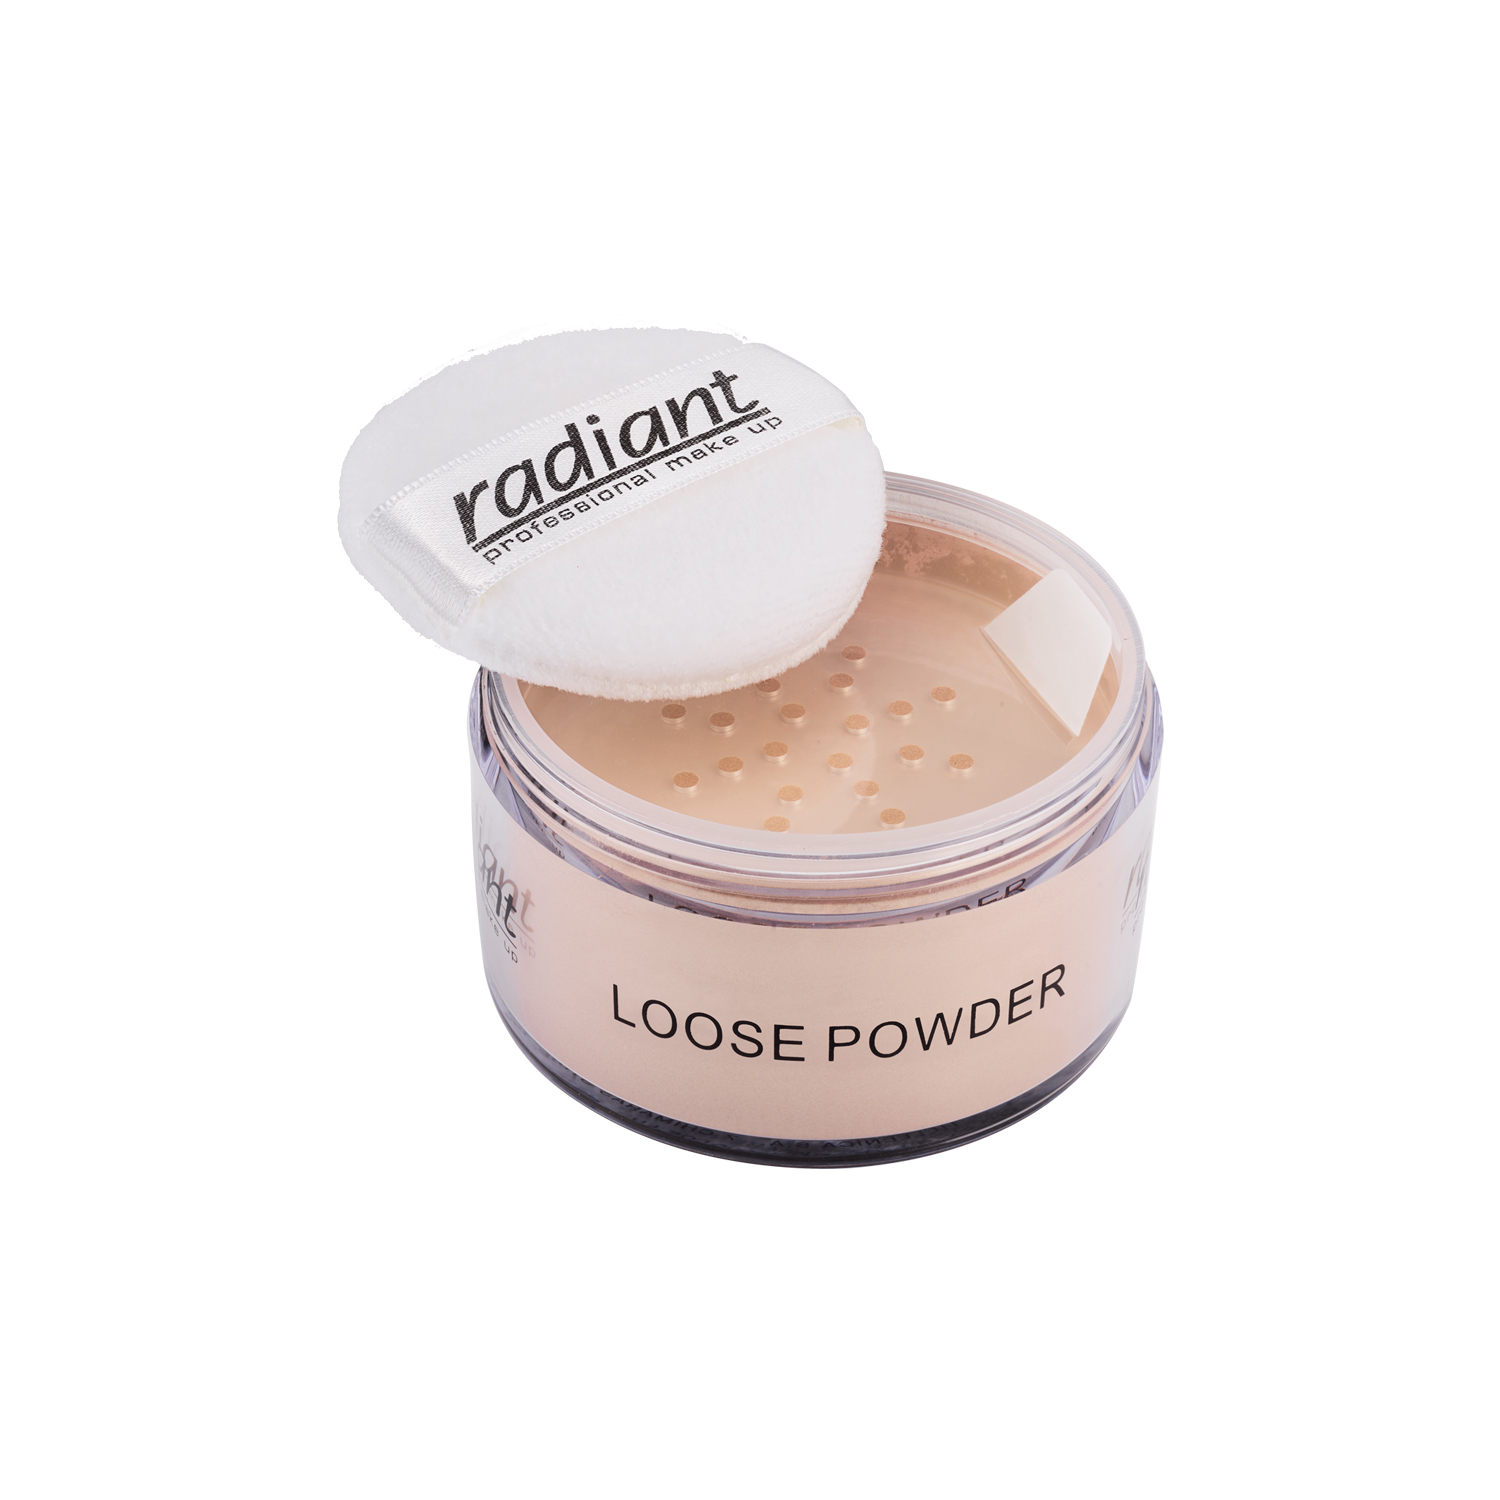 LOOSE POWDER (03 Ivory)